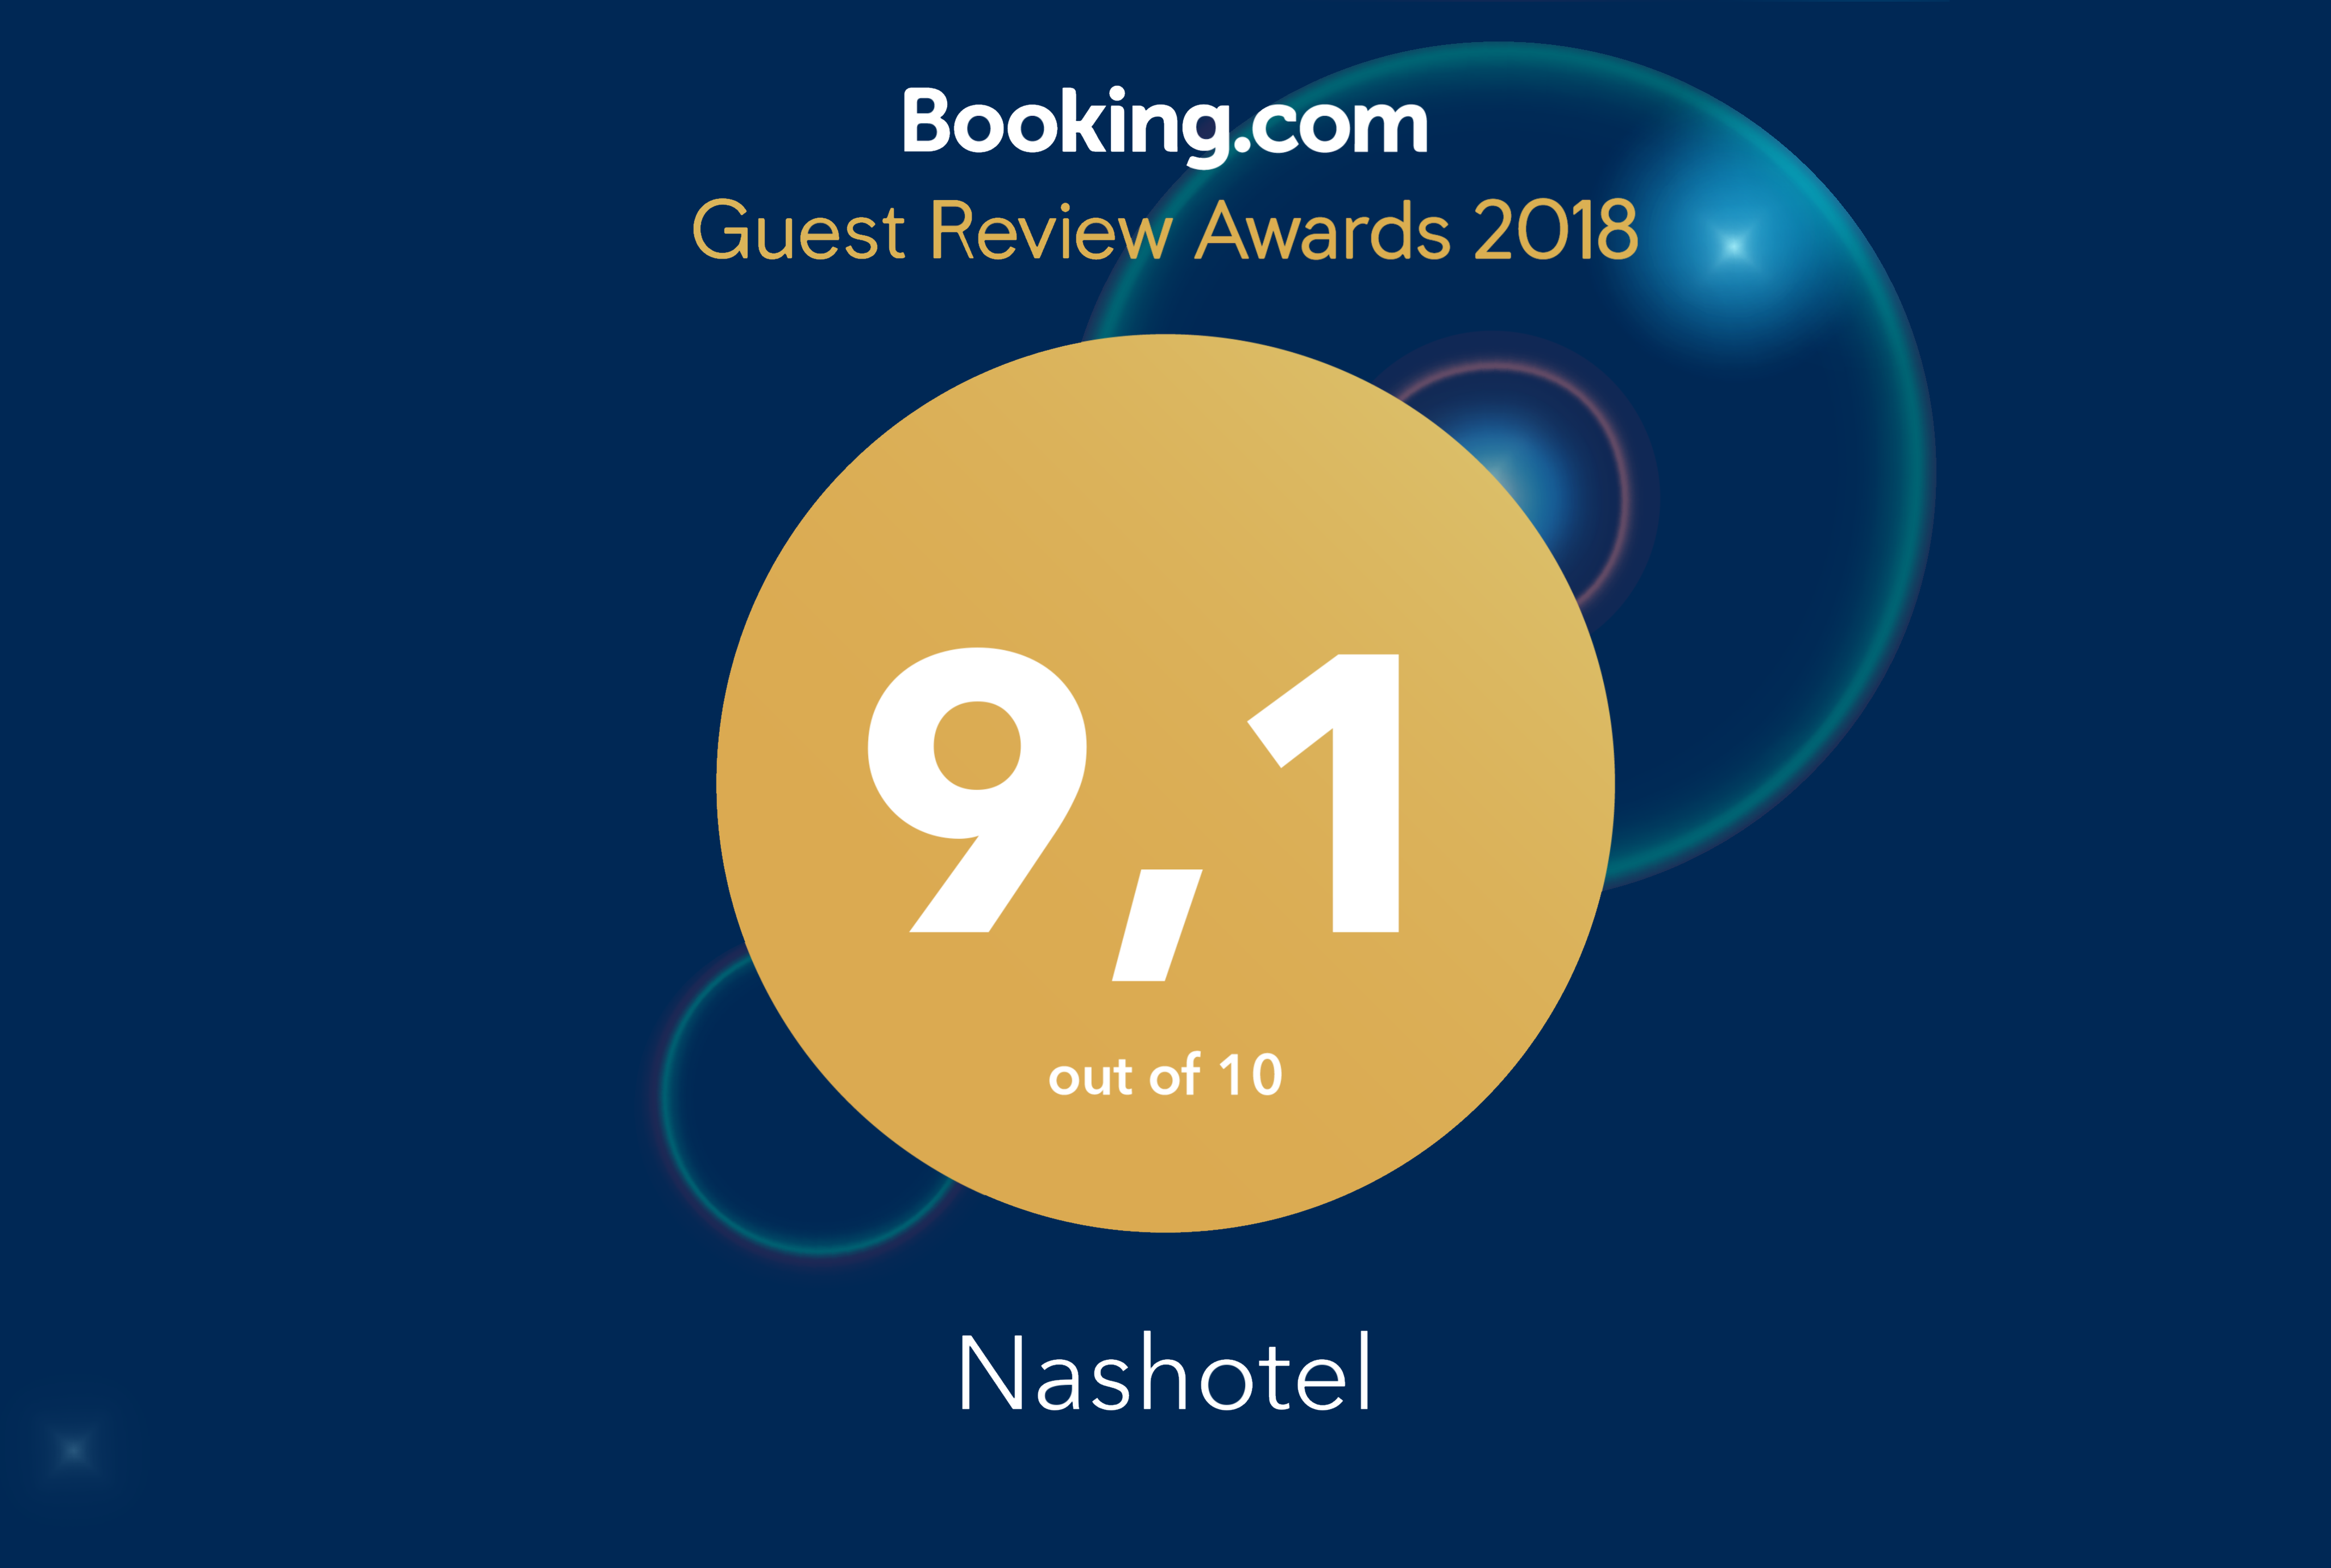 Award from Booking.com!